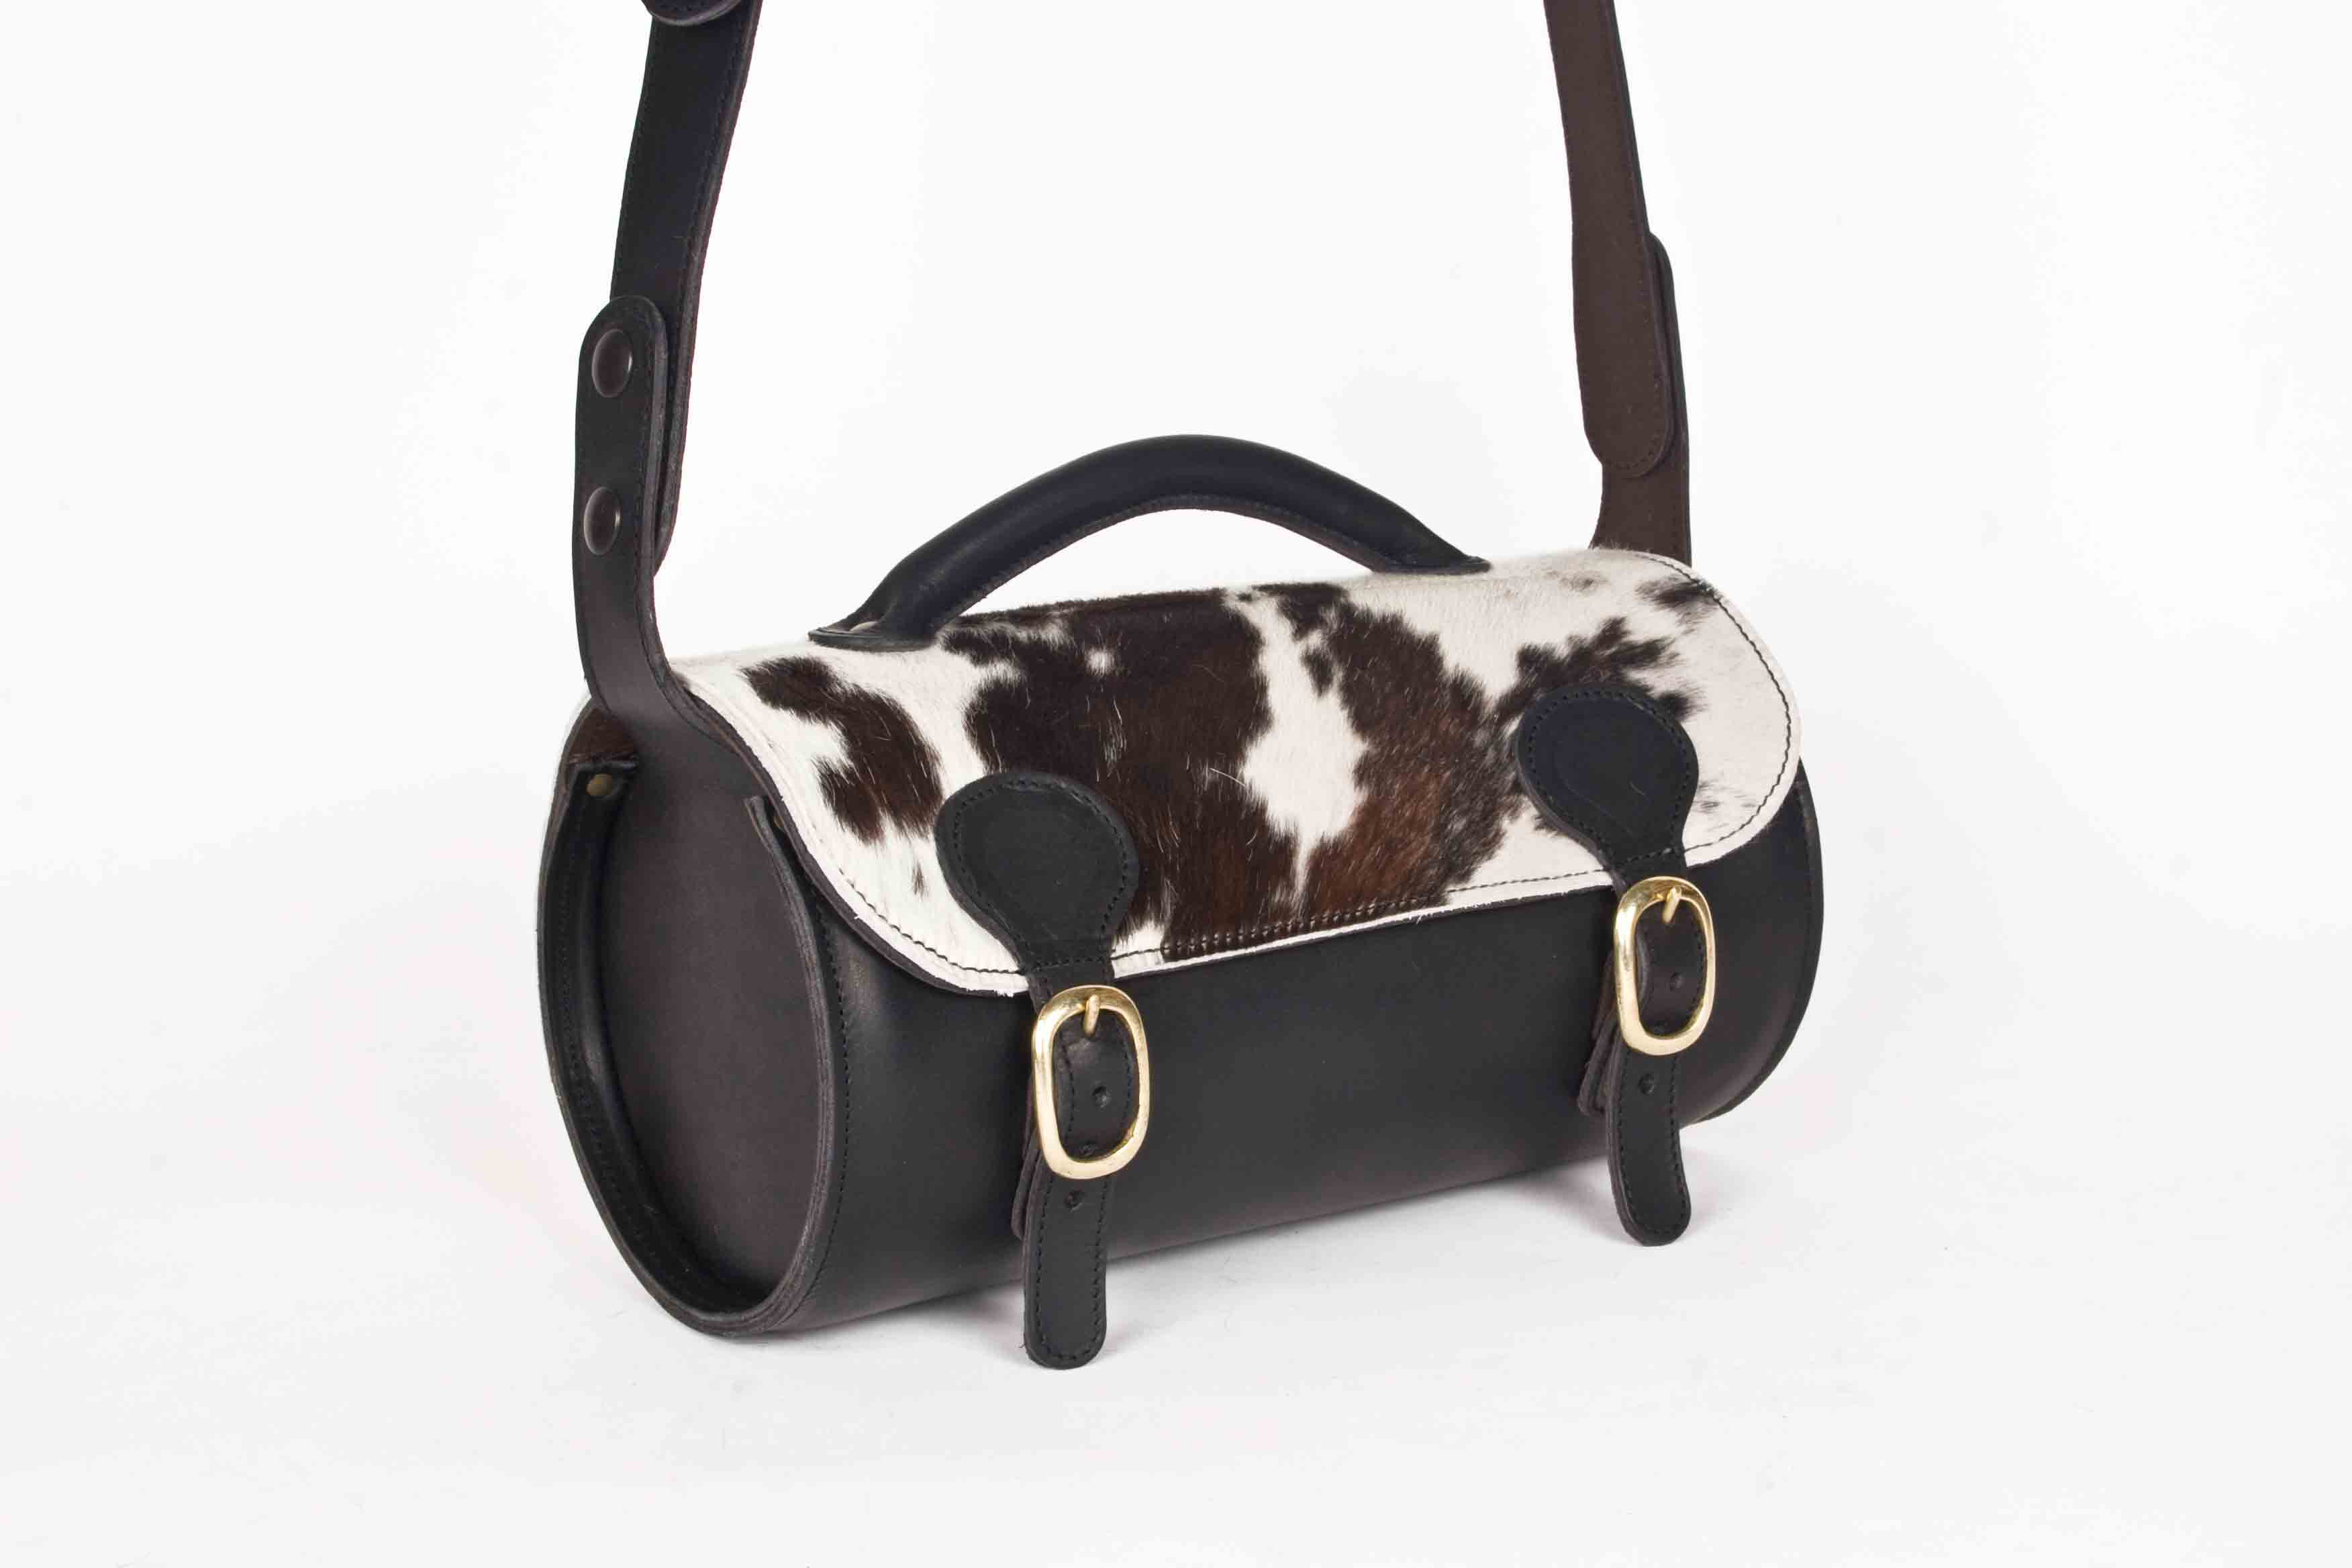 Round Bag black with cow hair detail